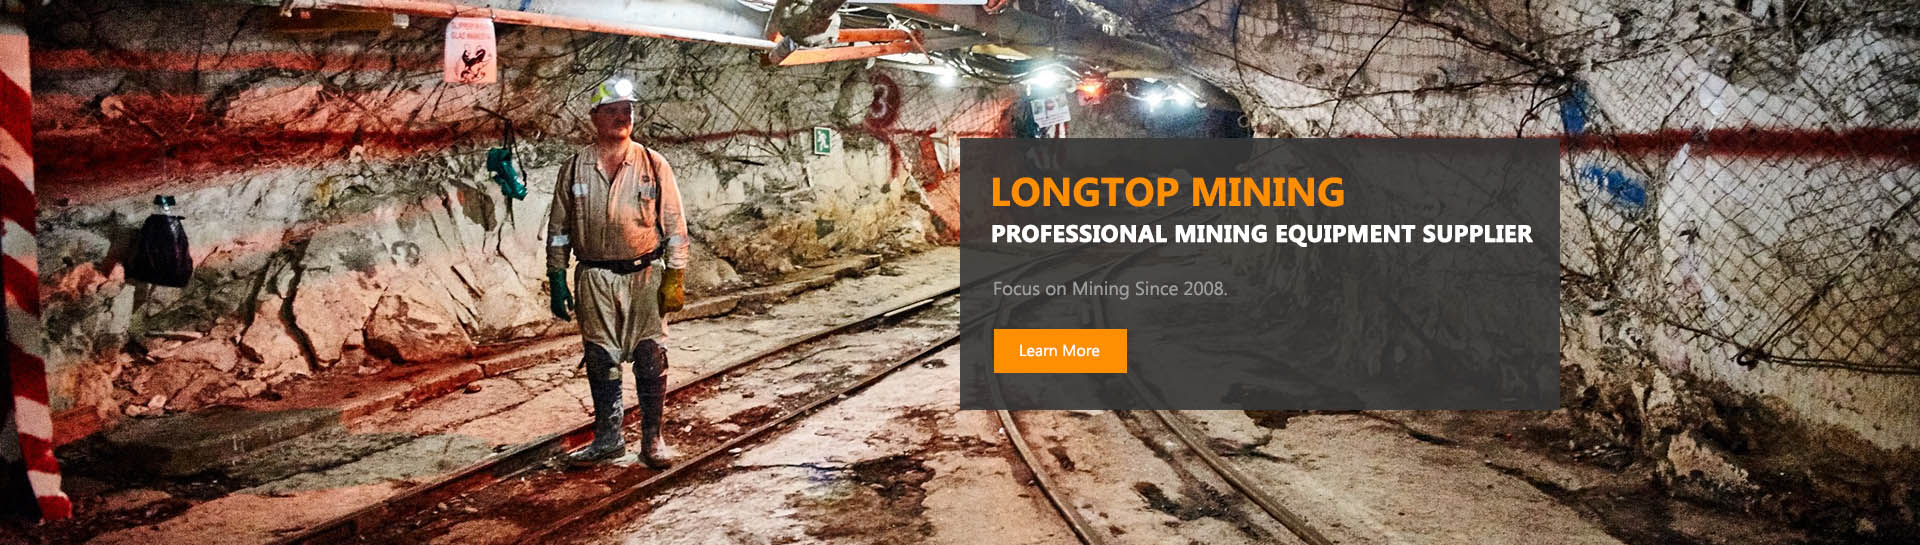 Longtop Mining, Professional Mining Equipment Supplier